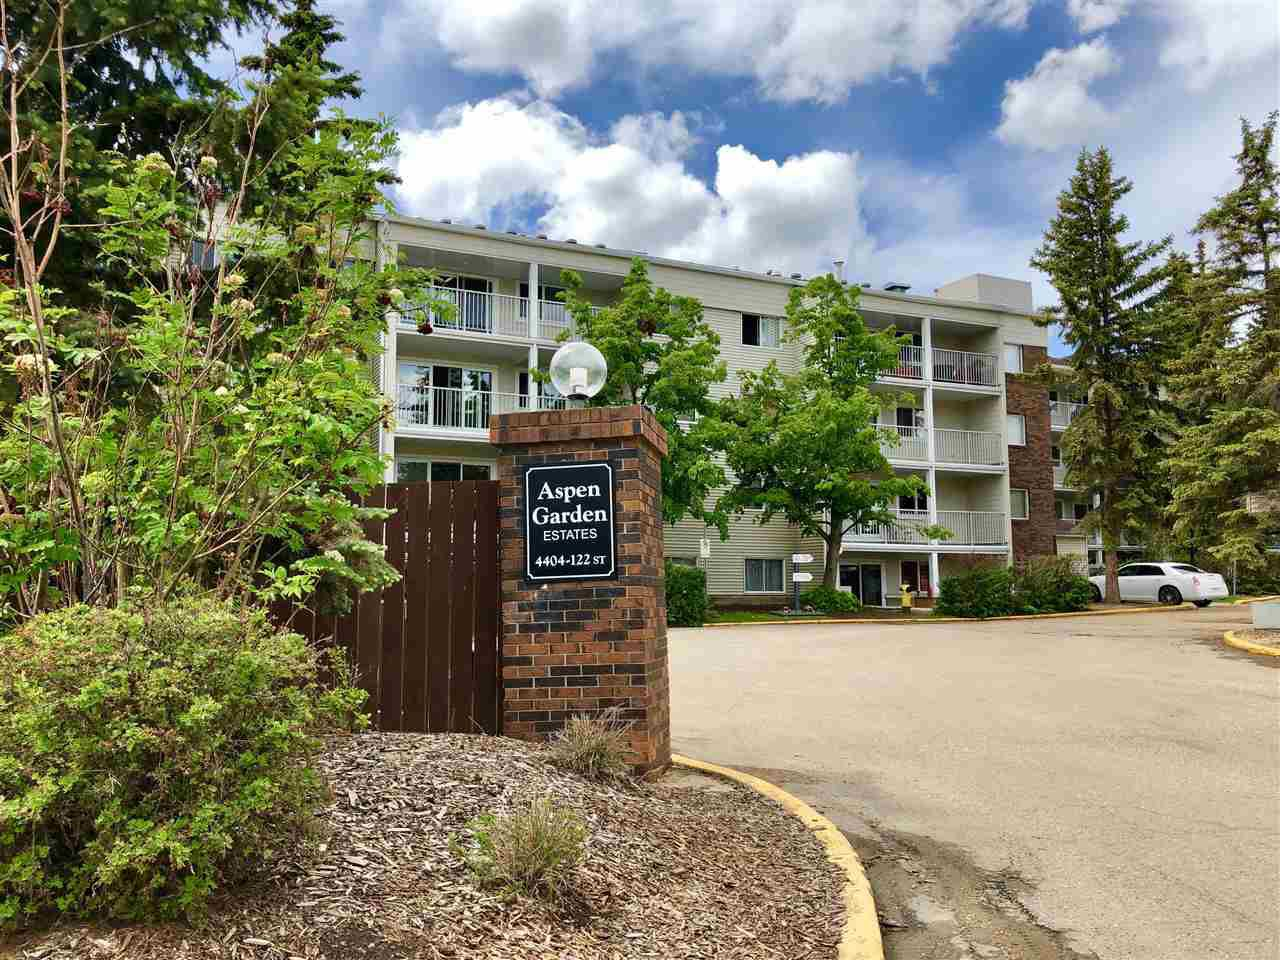 Main Photo: 217 4404 122 Street in Edmonton: Zone 16 Condo for sale : MLS®# E4161499